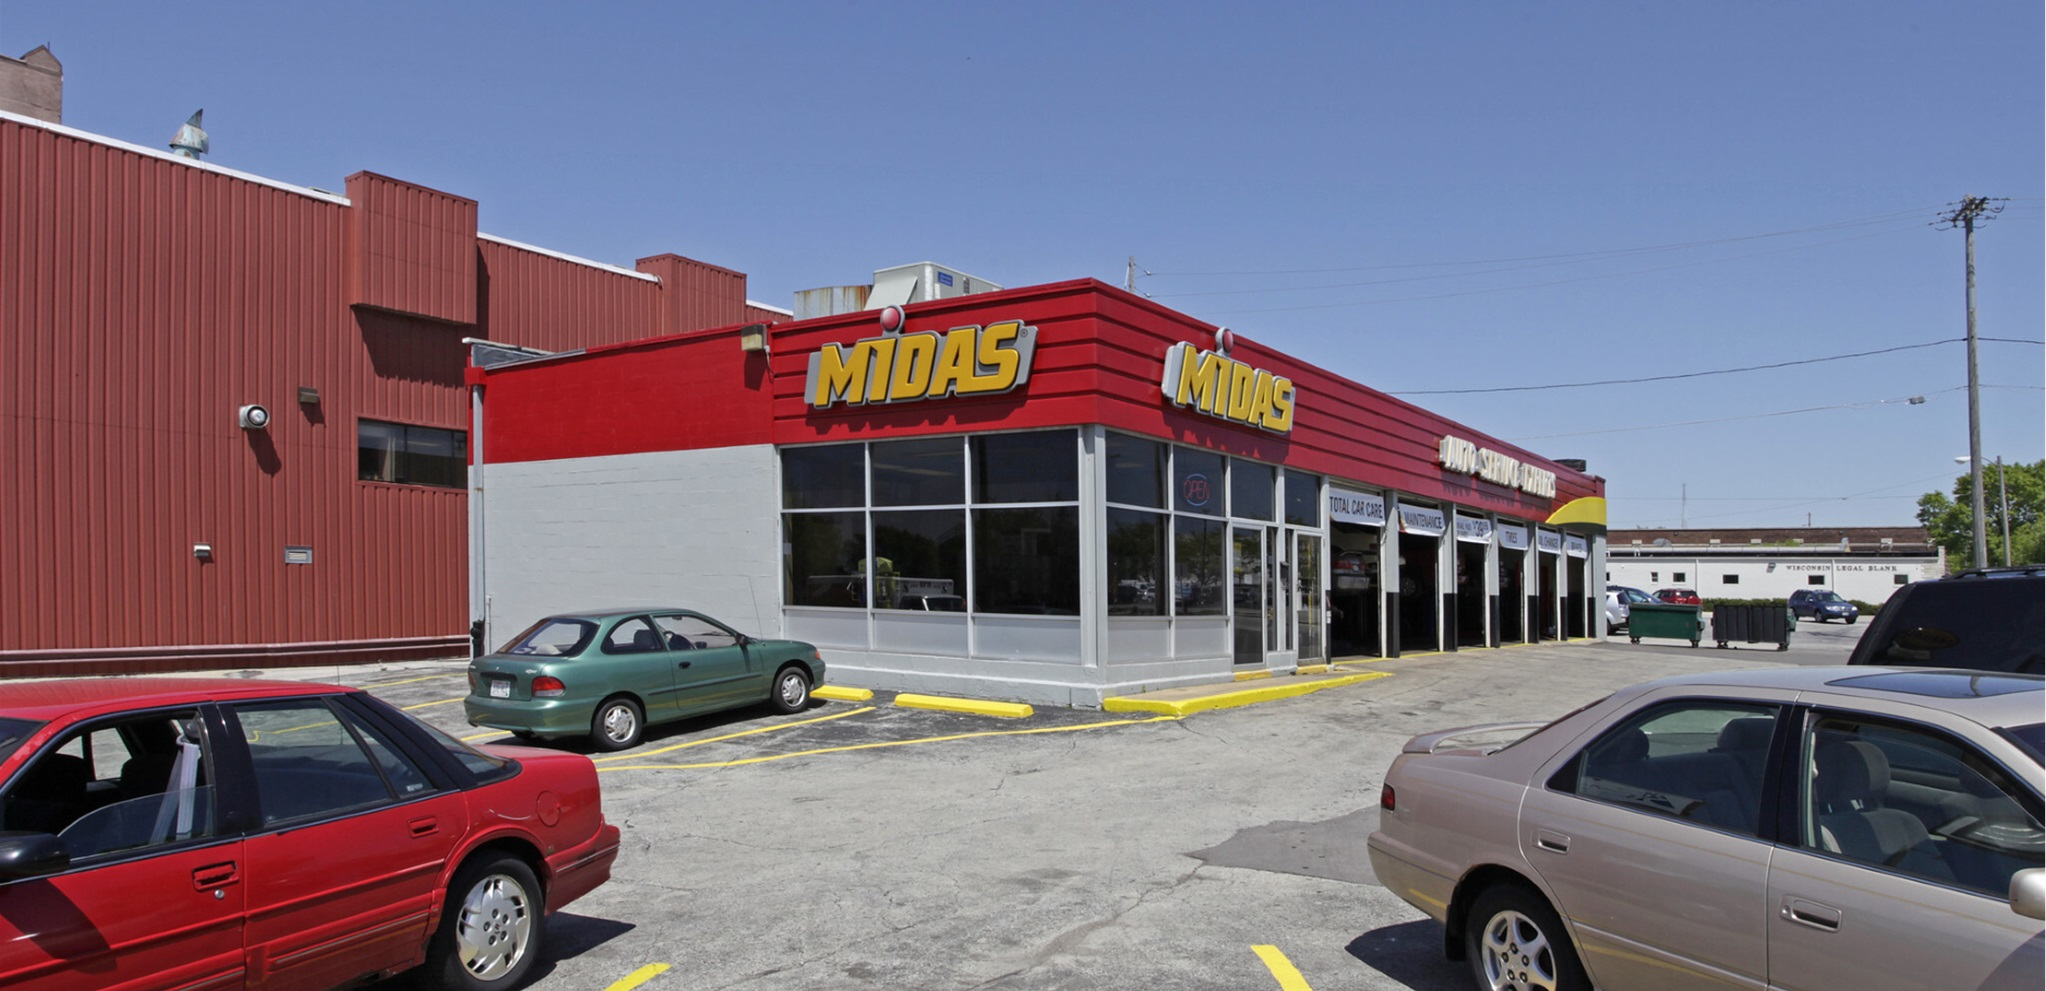 The Boulder Group Arranges Sale of Net Leased Midas property